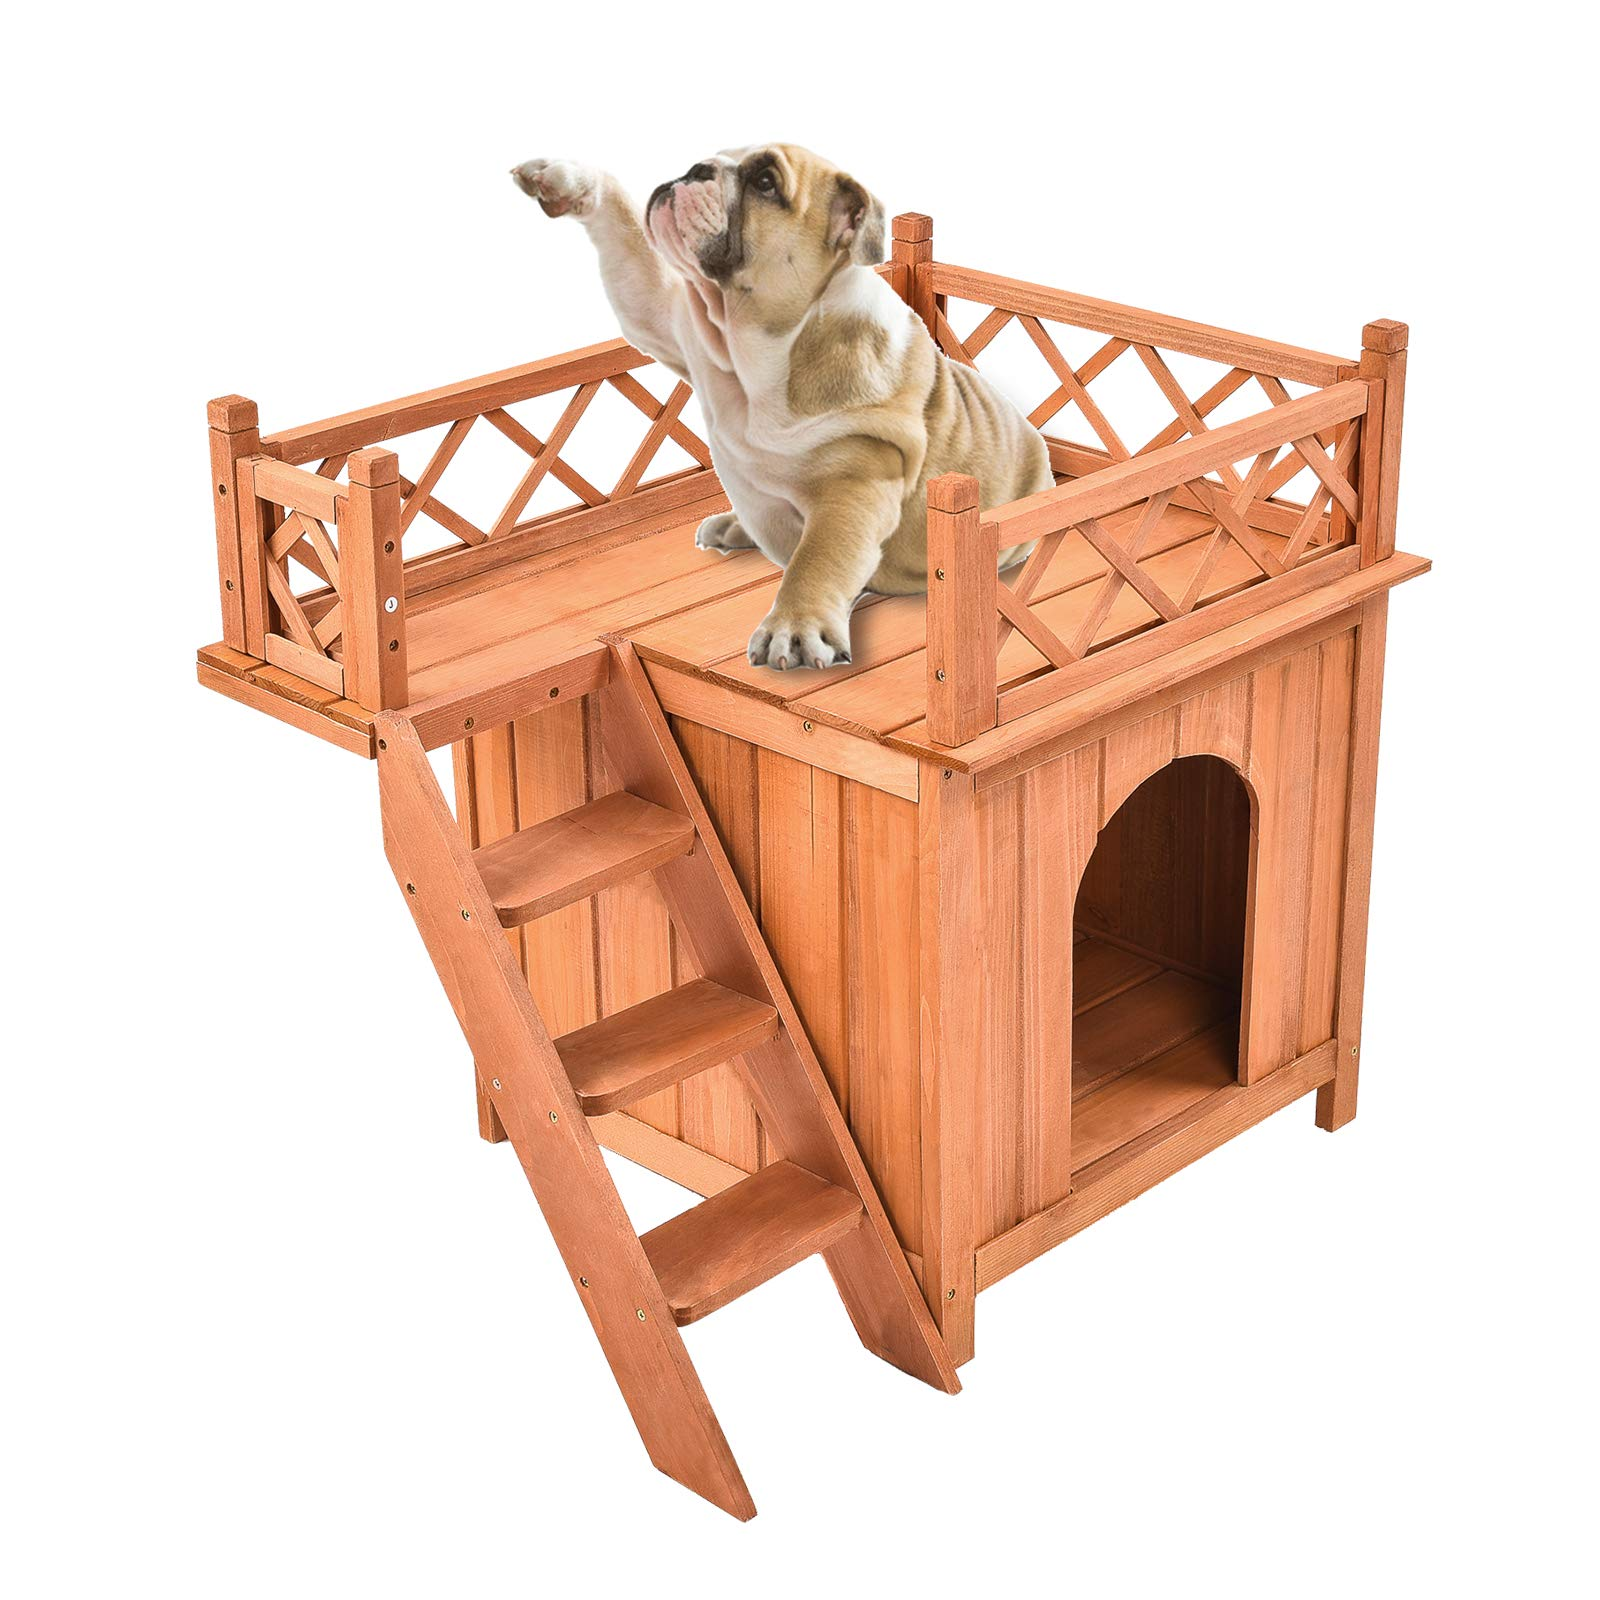 SUNCOO Wooden Dog House Cat Room for Indoor Use,Puppy Bed Room with Stairs Shelter Balcony Bed,Cat Condo for Small Pets, L20.67 x W28.54 x H25.59